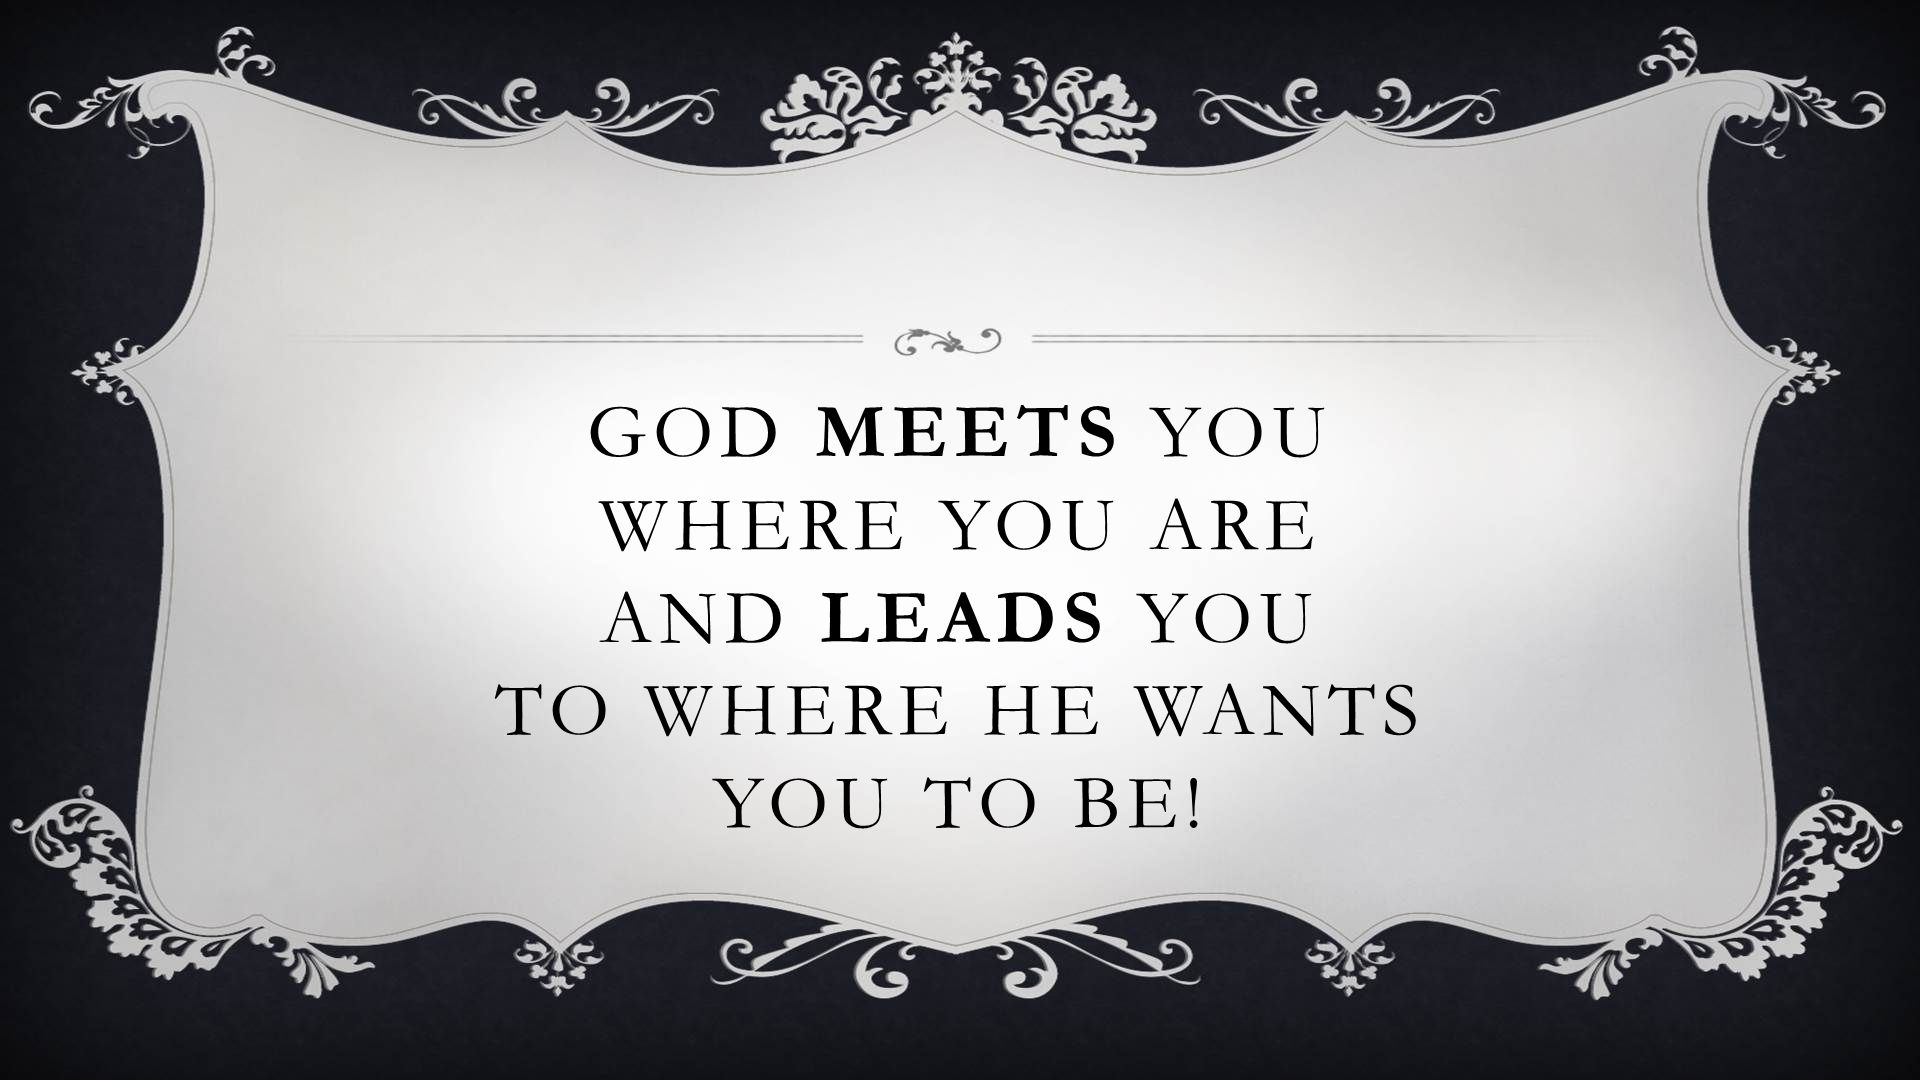 GOD MEETS YOU WHERE YOU ARE AND LEADS YOU TO WHERE HE WANTS YOU TO BE!